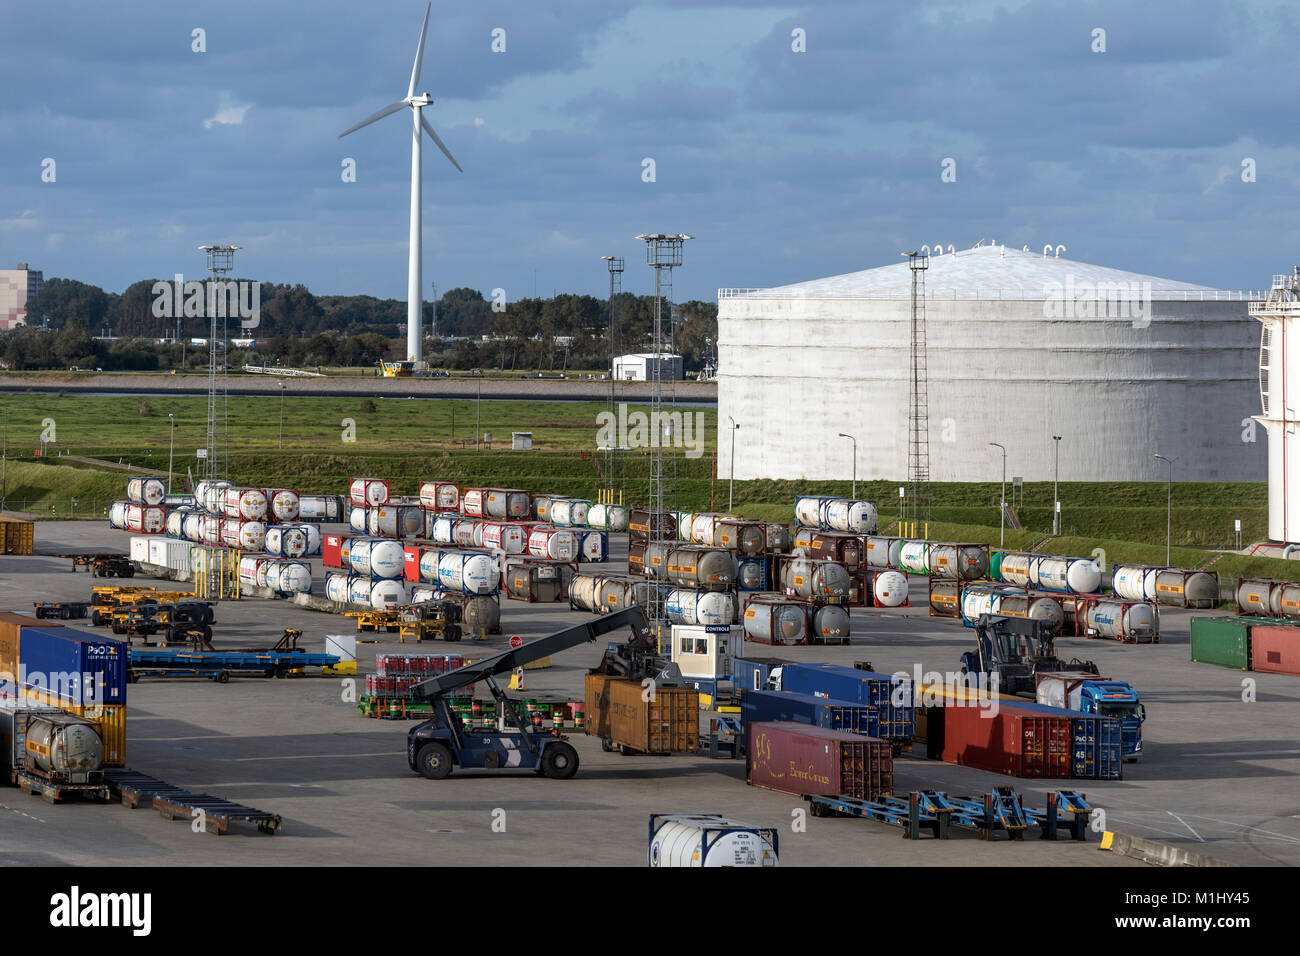 Chemical storage tanks and containers in a storage area in the Port of Rotterdam, Belgium. - Stock Image